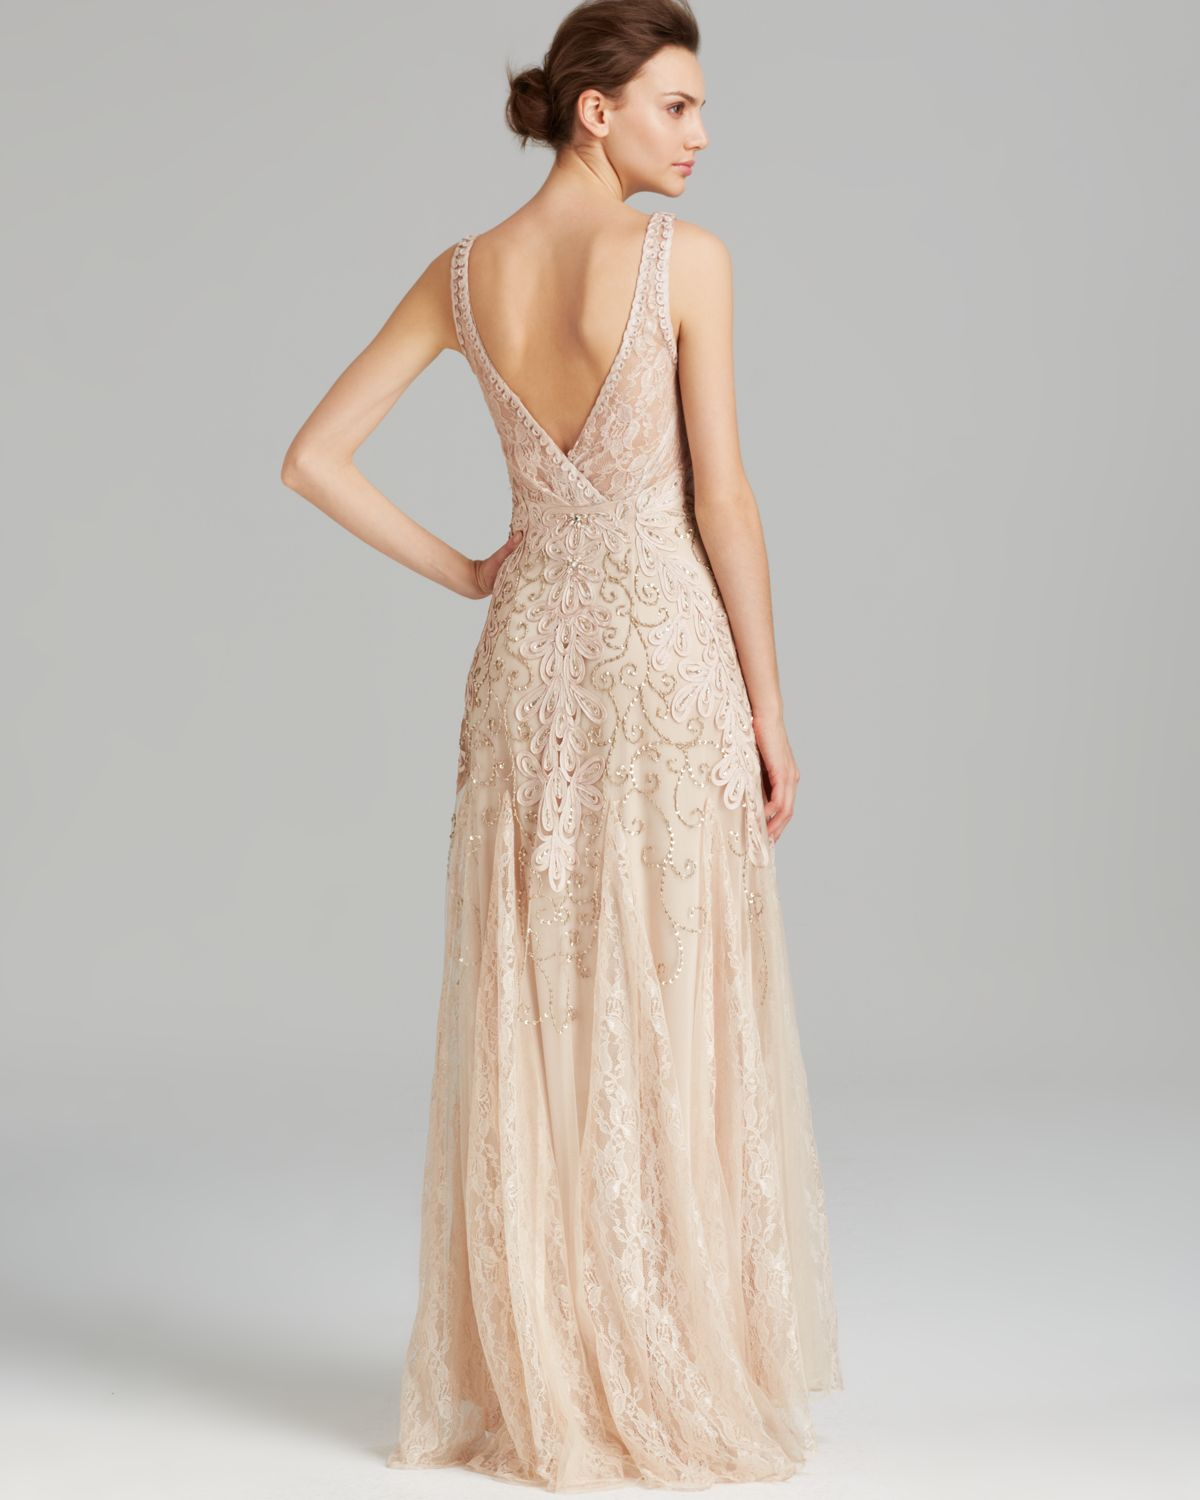 Lyst - Sue Wong Gown - Double V Neck Soutache in Natural